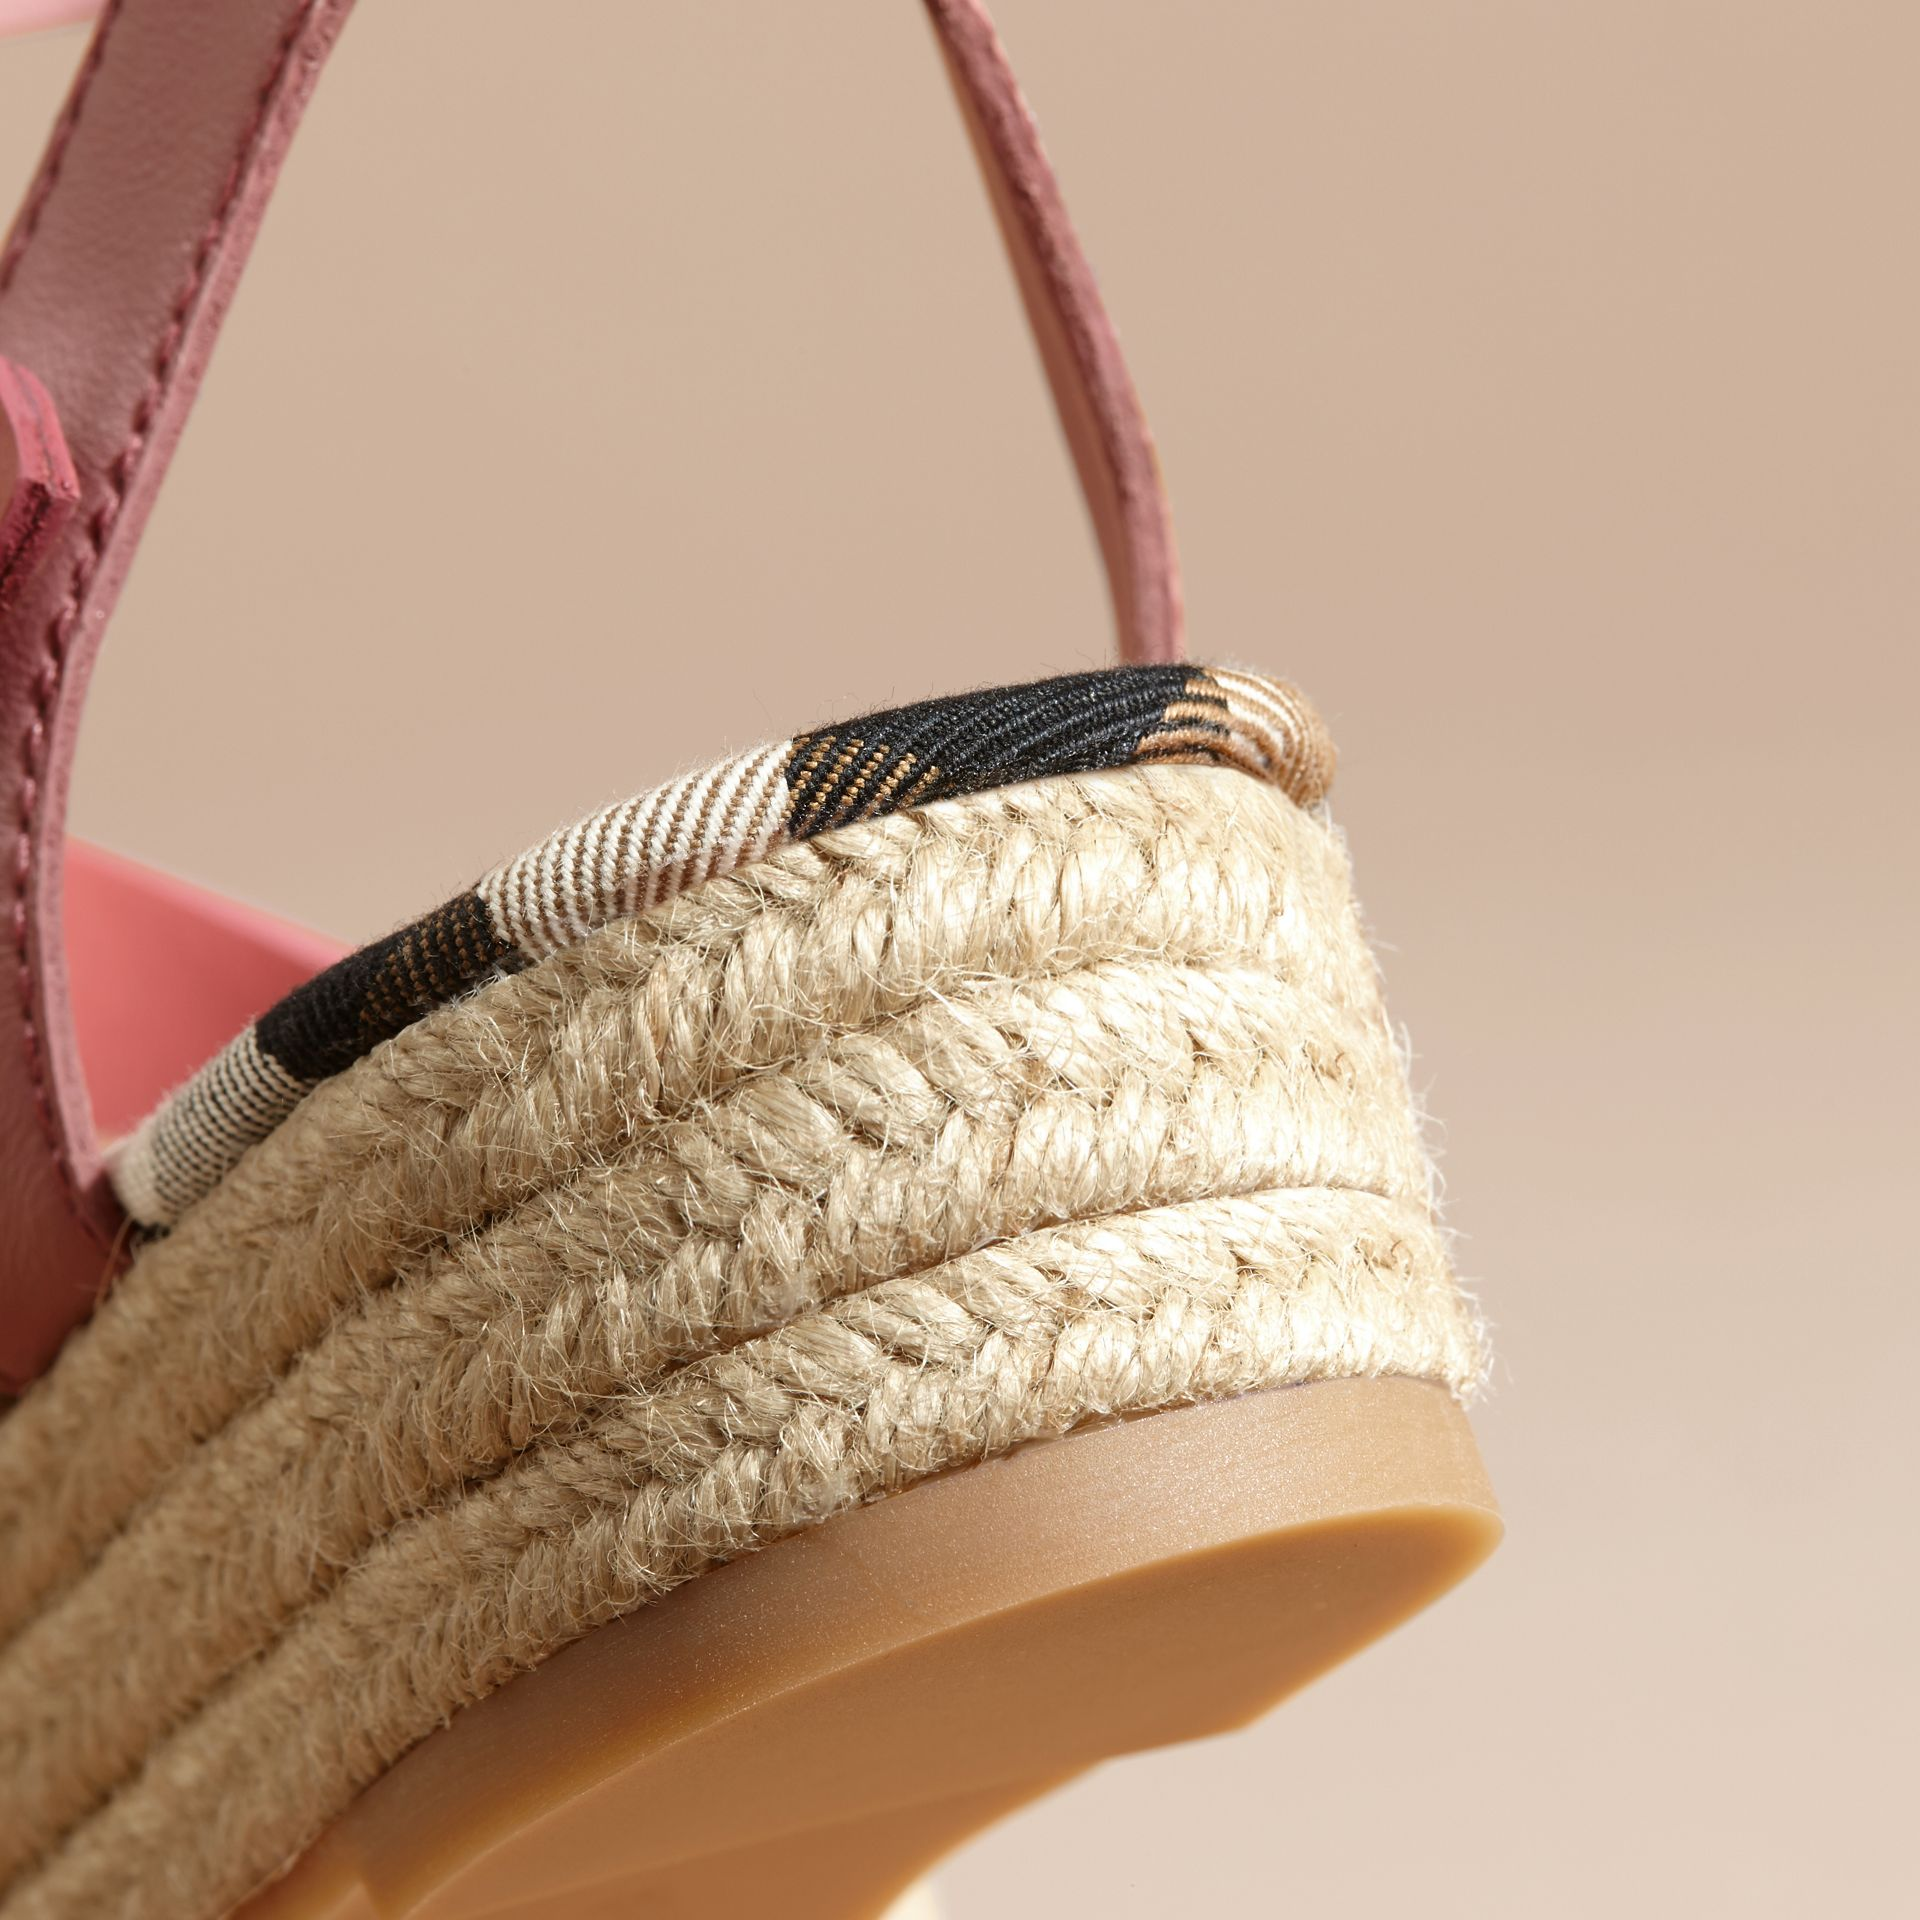 Two-tone Leather Espadrille Sandals in Dusty Pink - Women | Burberry - gallery image 6